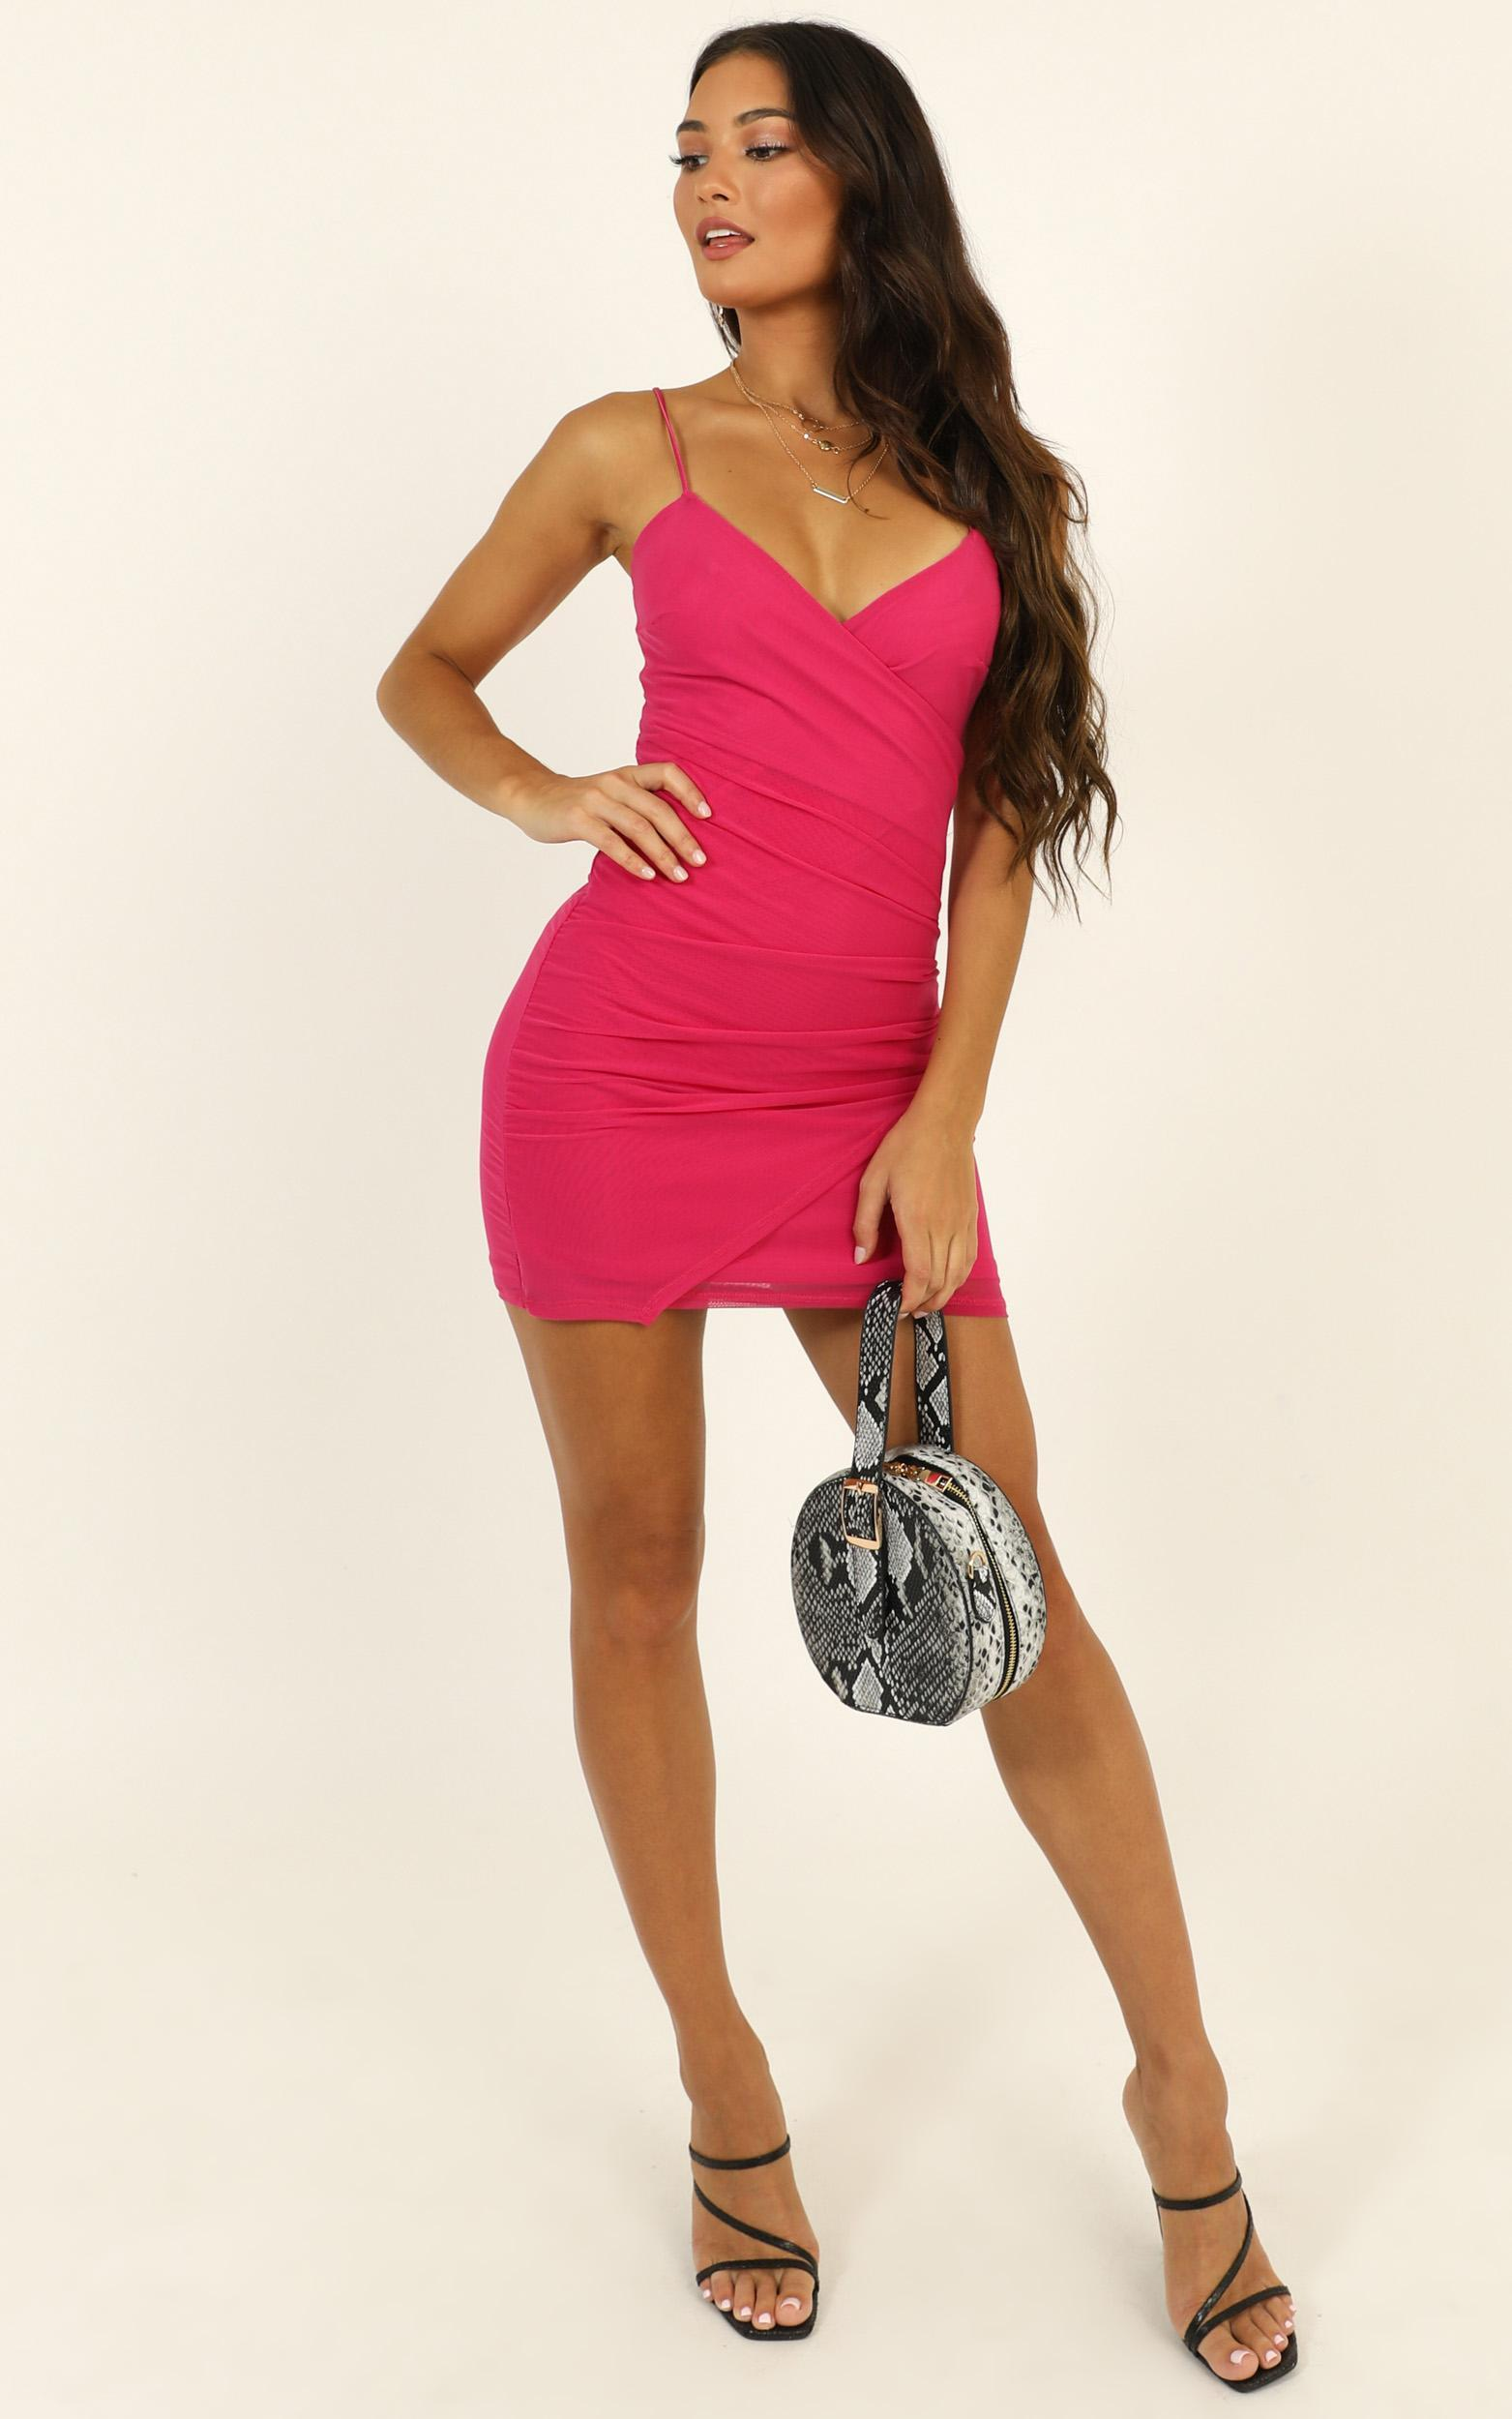 Do You Love Me Dress in hot pink mesh - 14 (XL), Pink, hi-res image number null